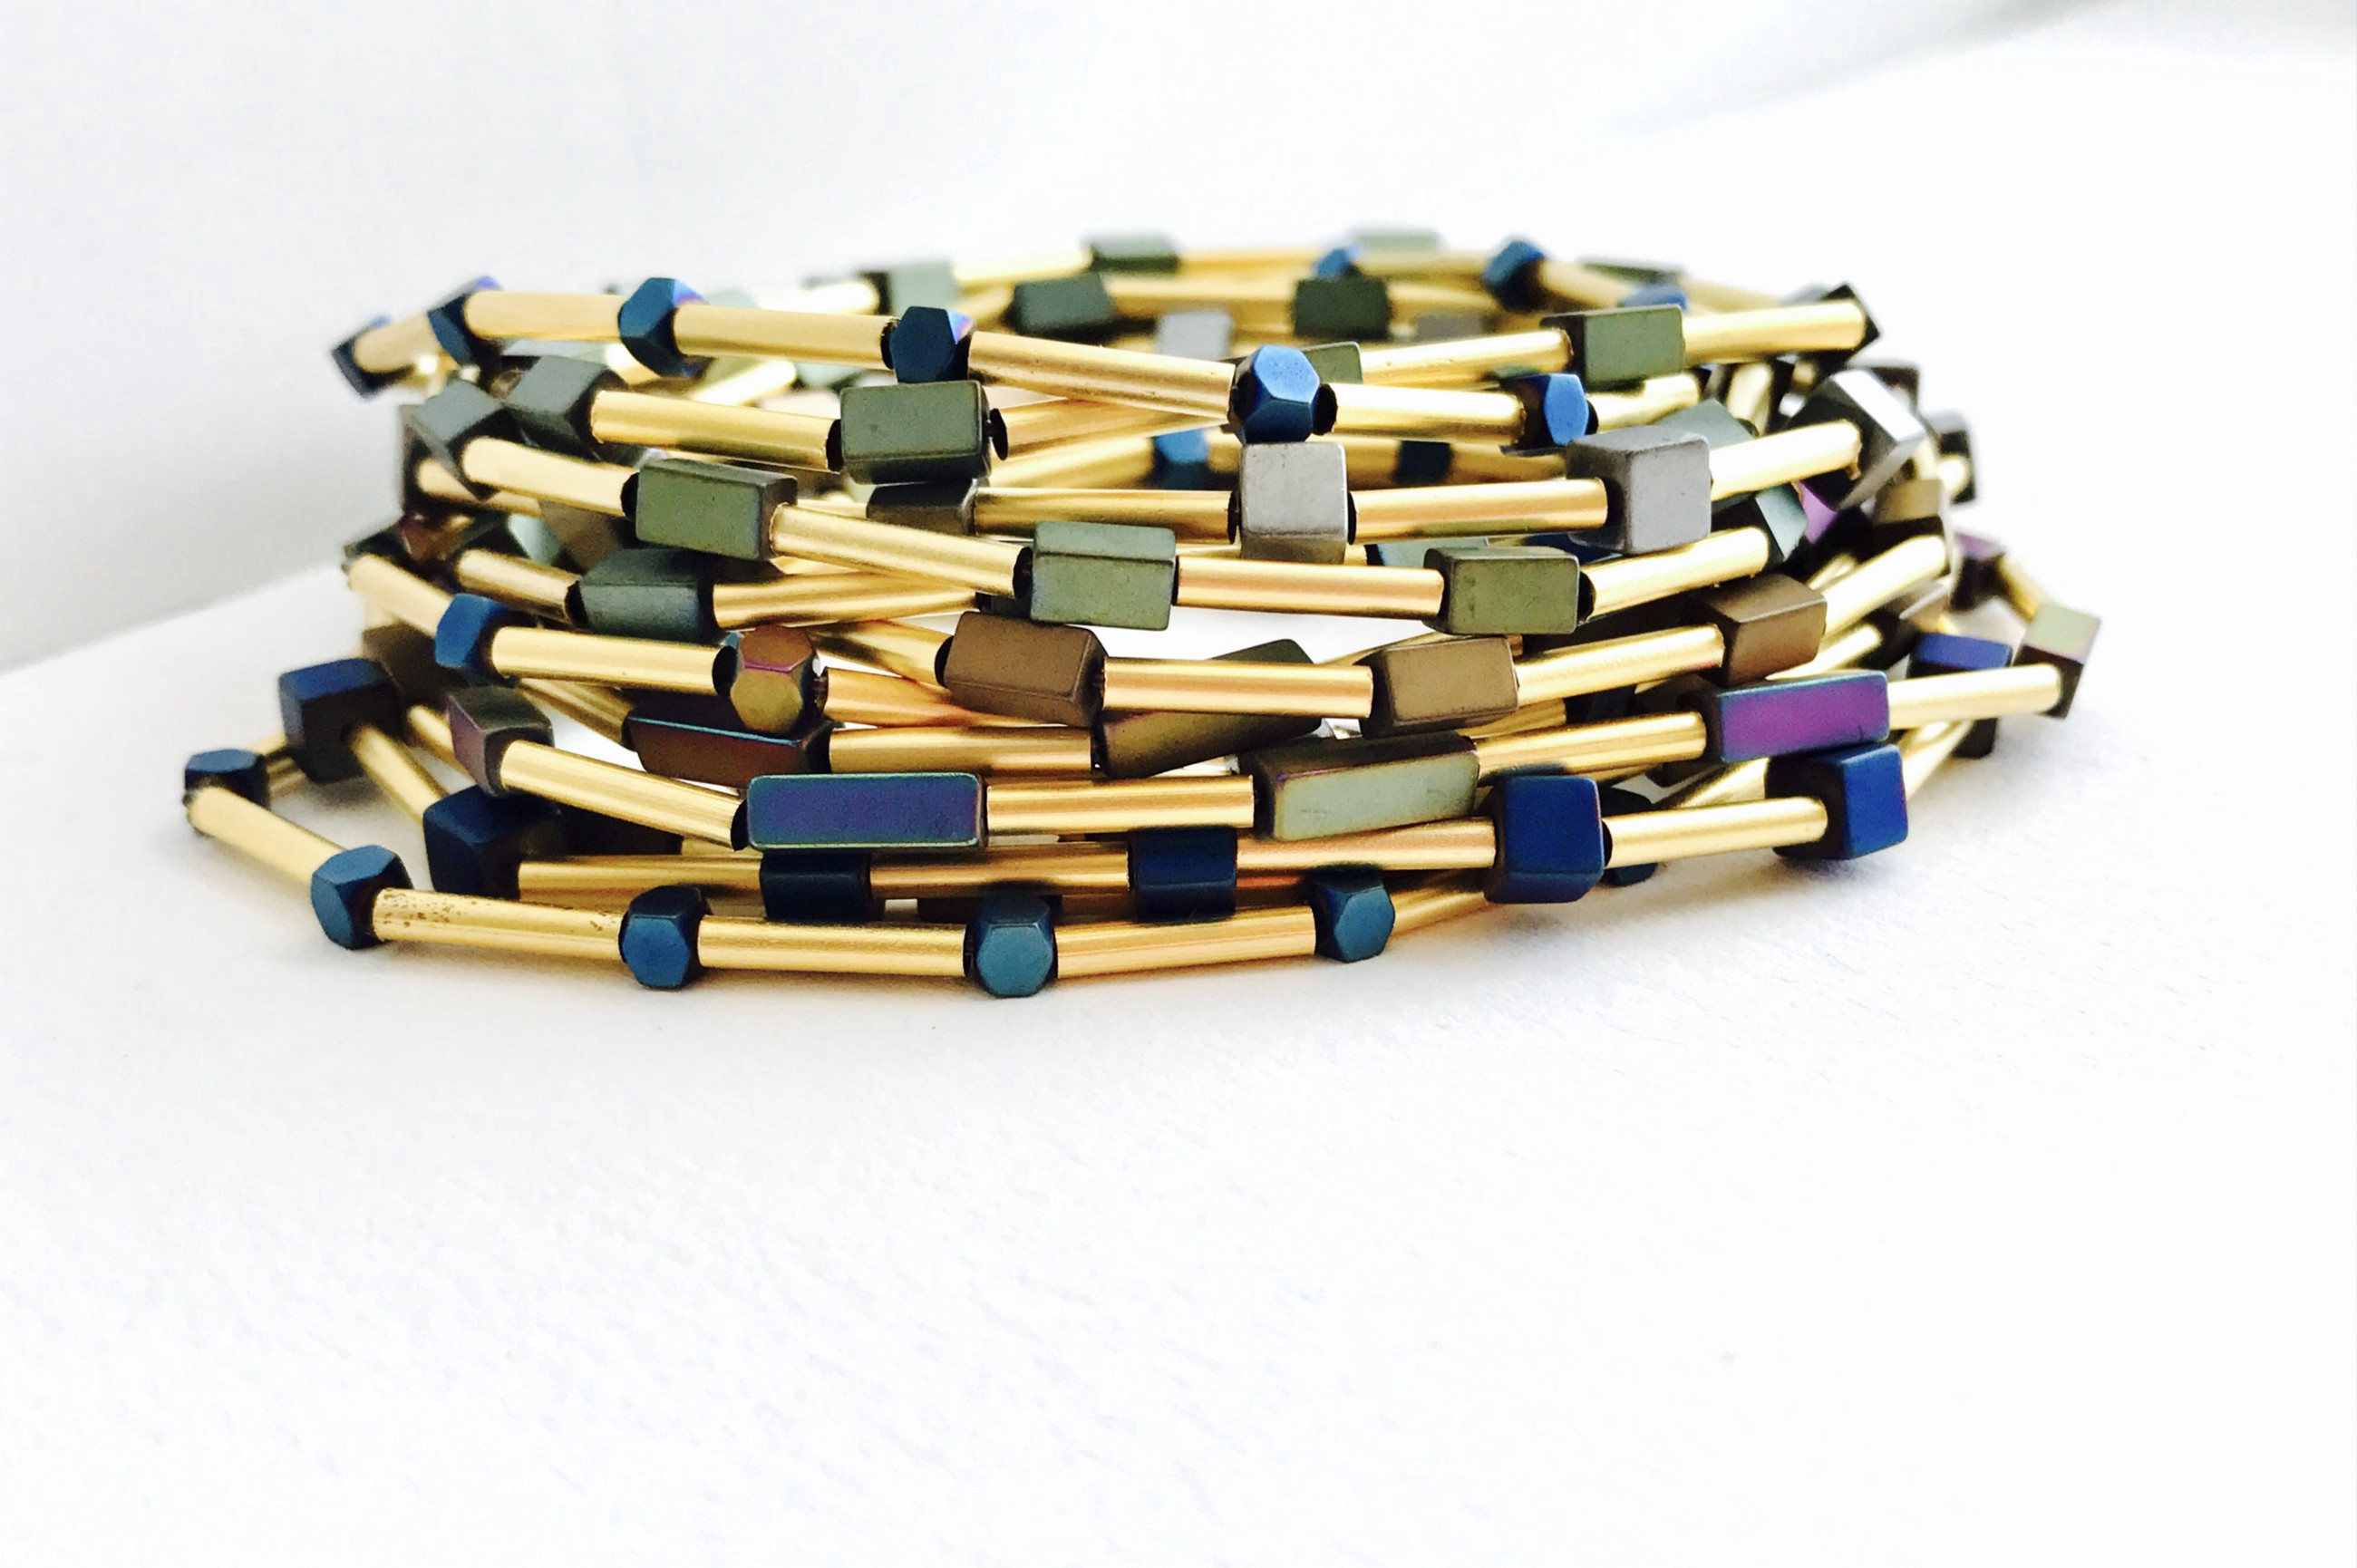 stack of bracelets made with gold cylindrical beads and colored beads.